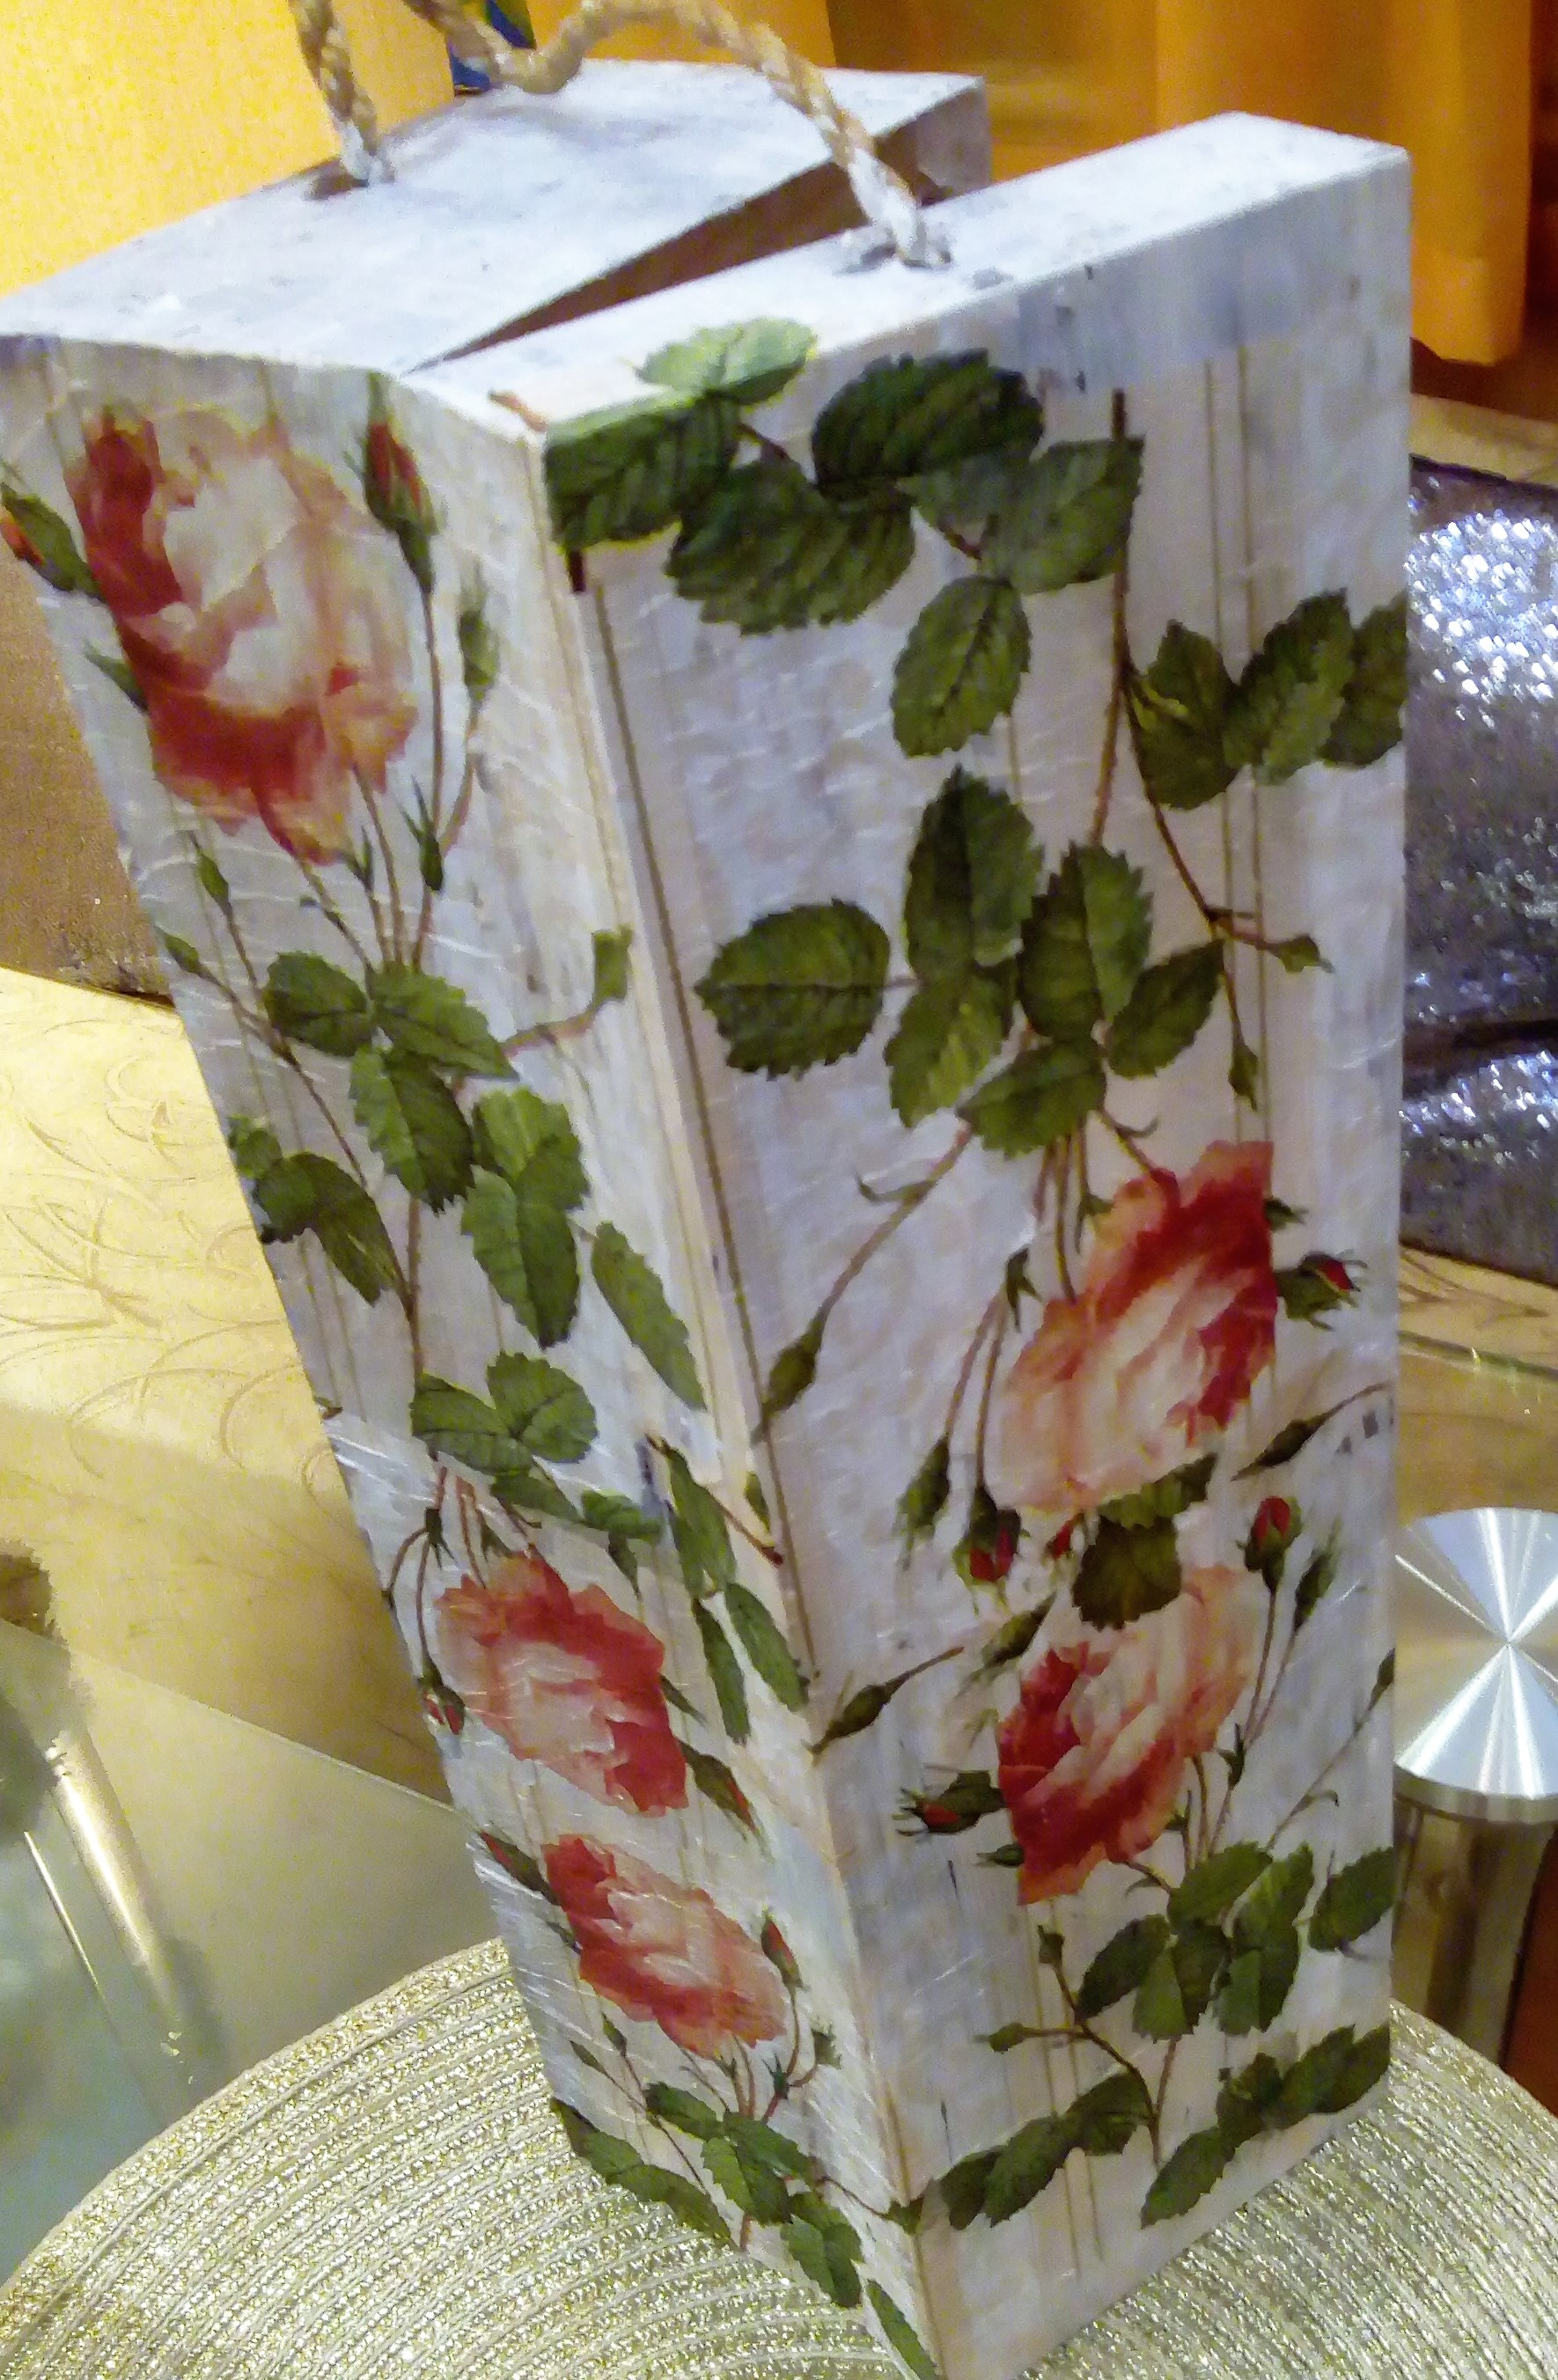 Here you can see an old chair updated with decoupage